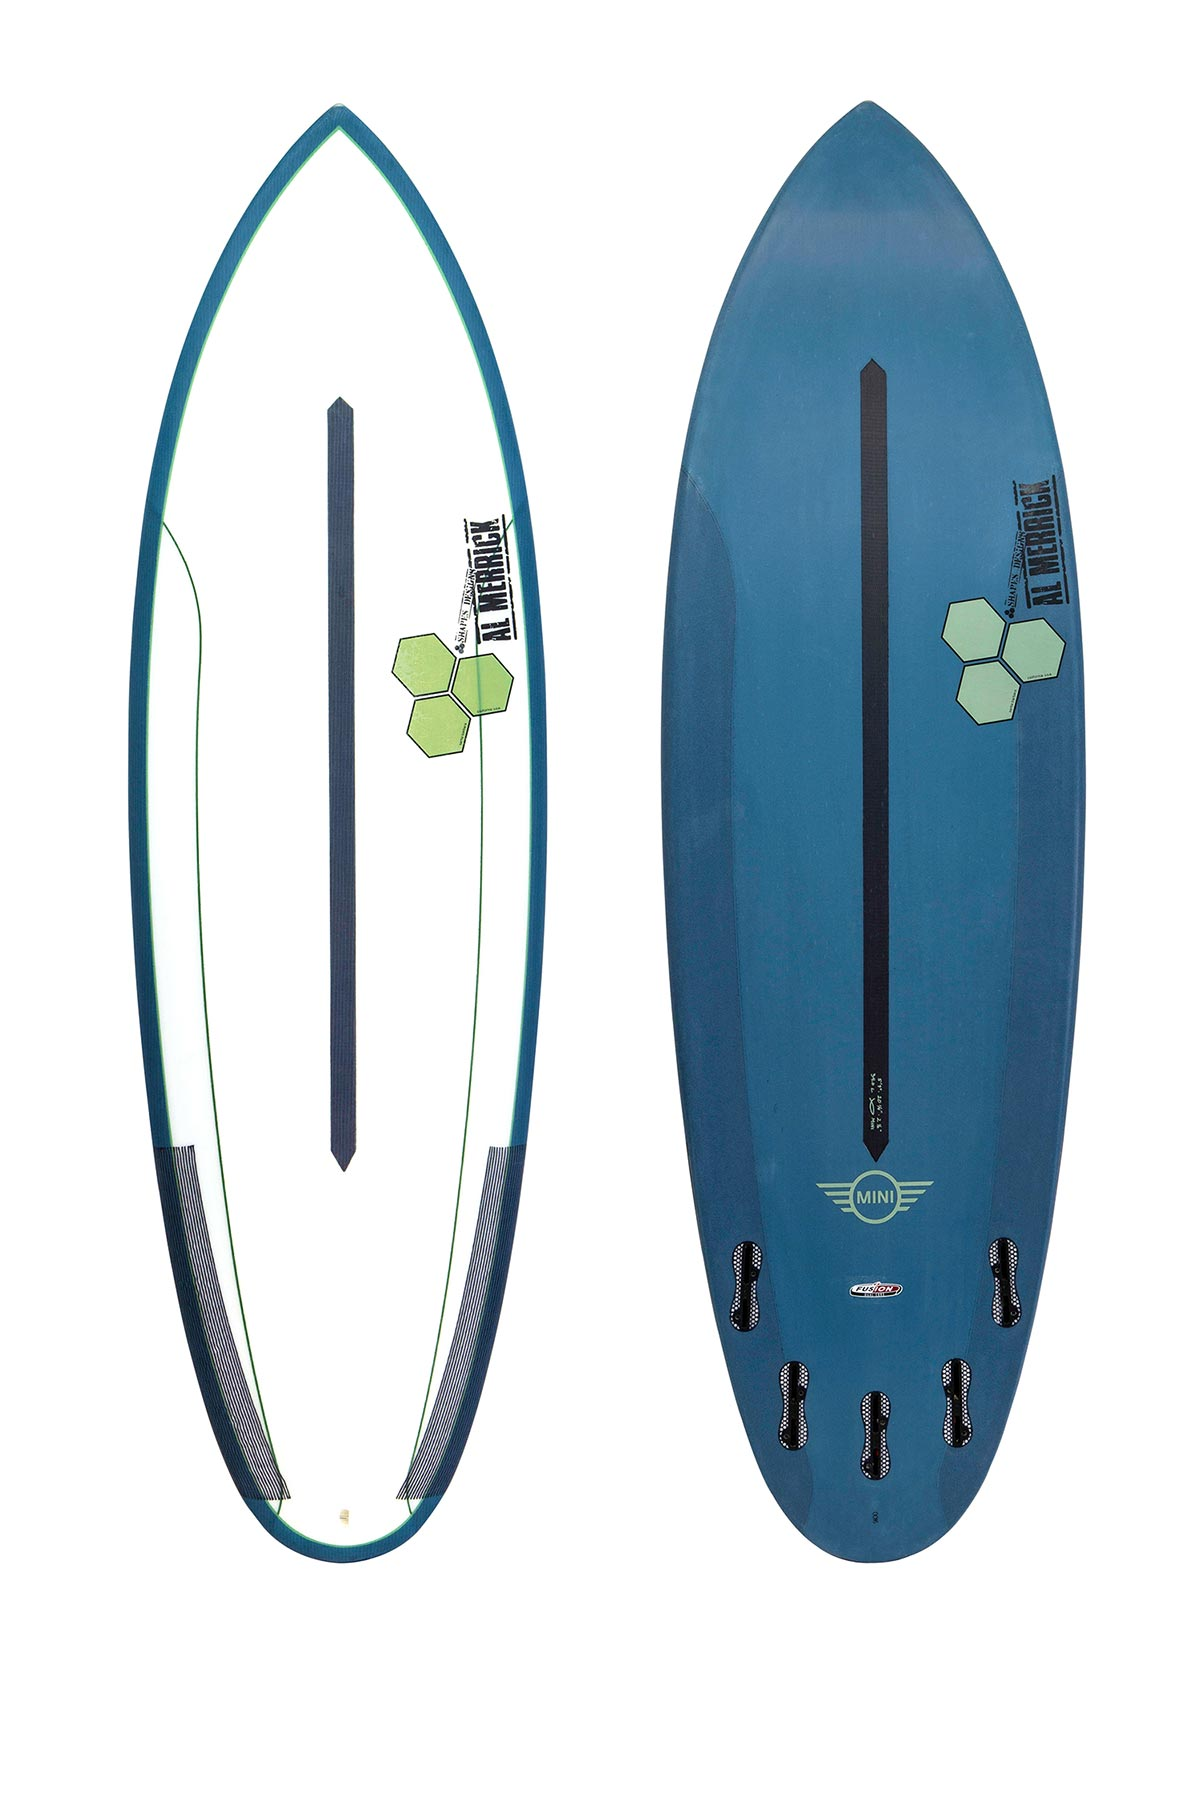 SharpEye Mini Channel Islands Surfboard